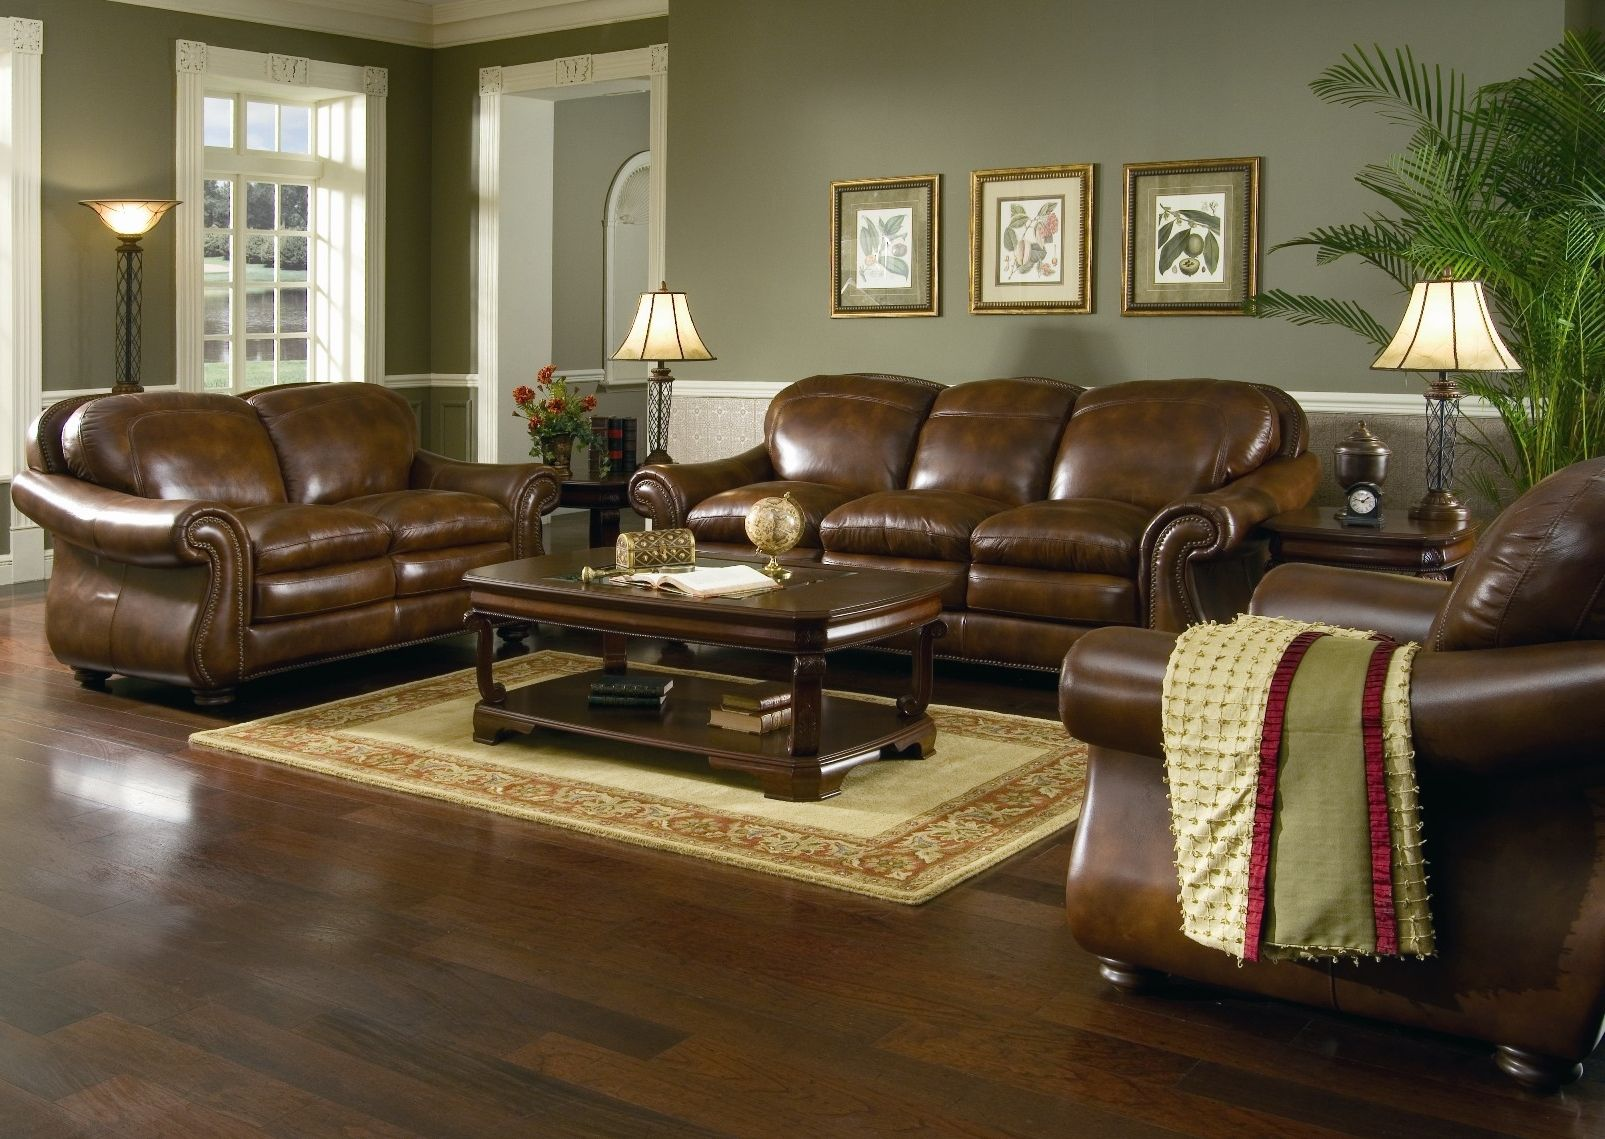 Best 25 Brown leather sofa bed ideas on Pinterest  Brown